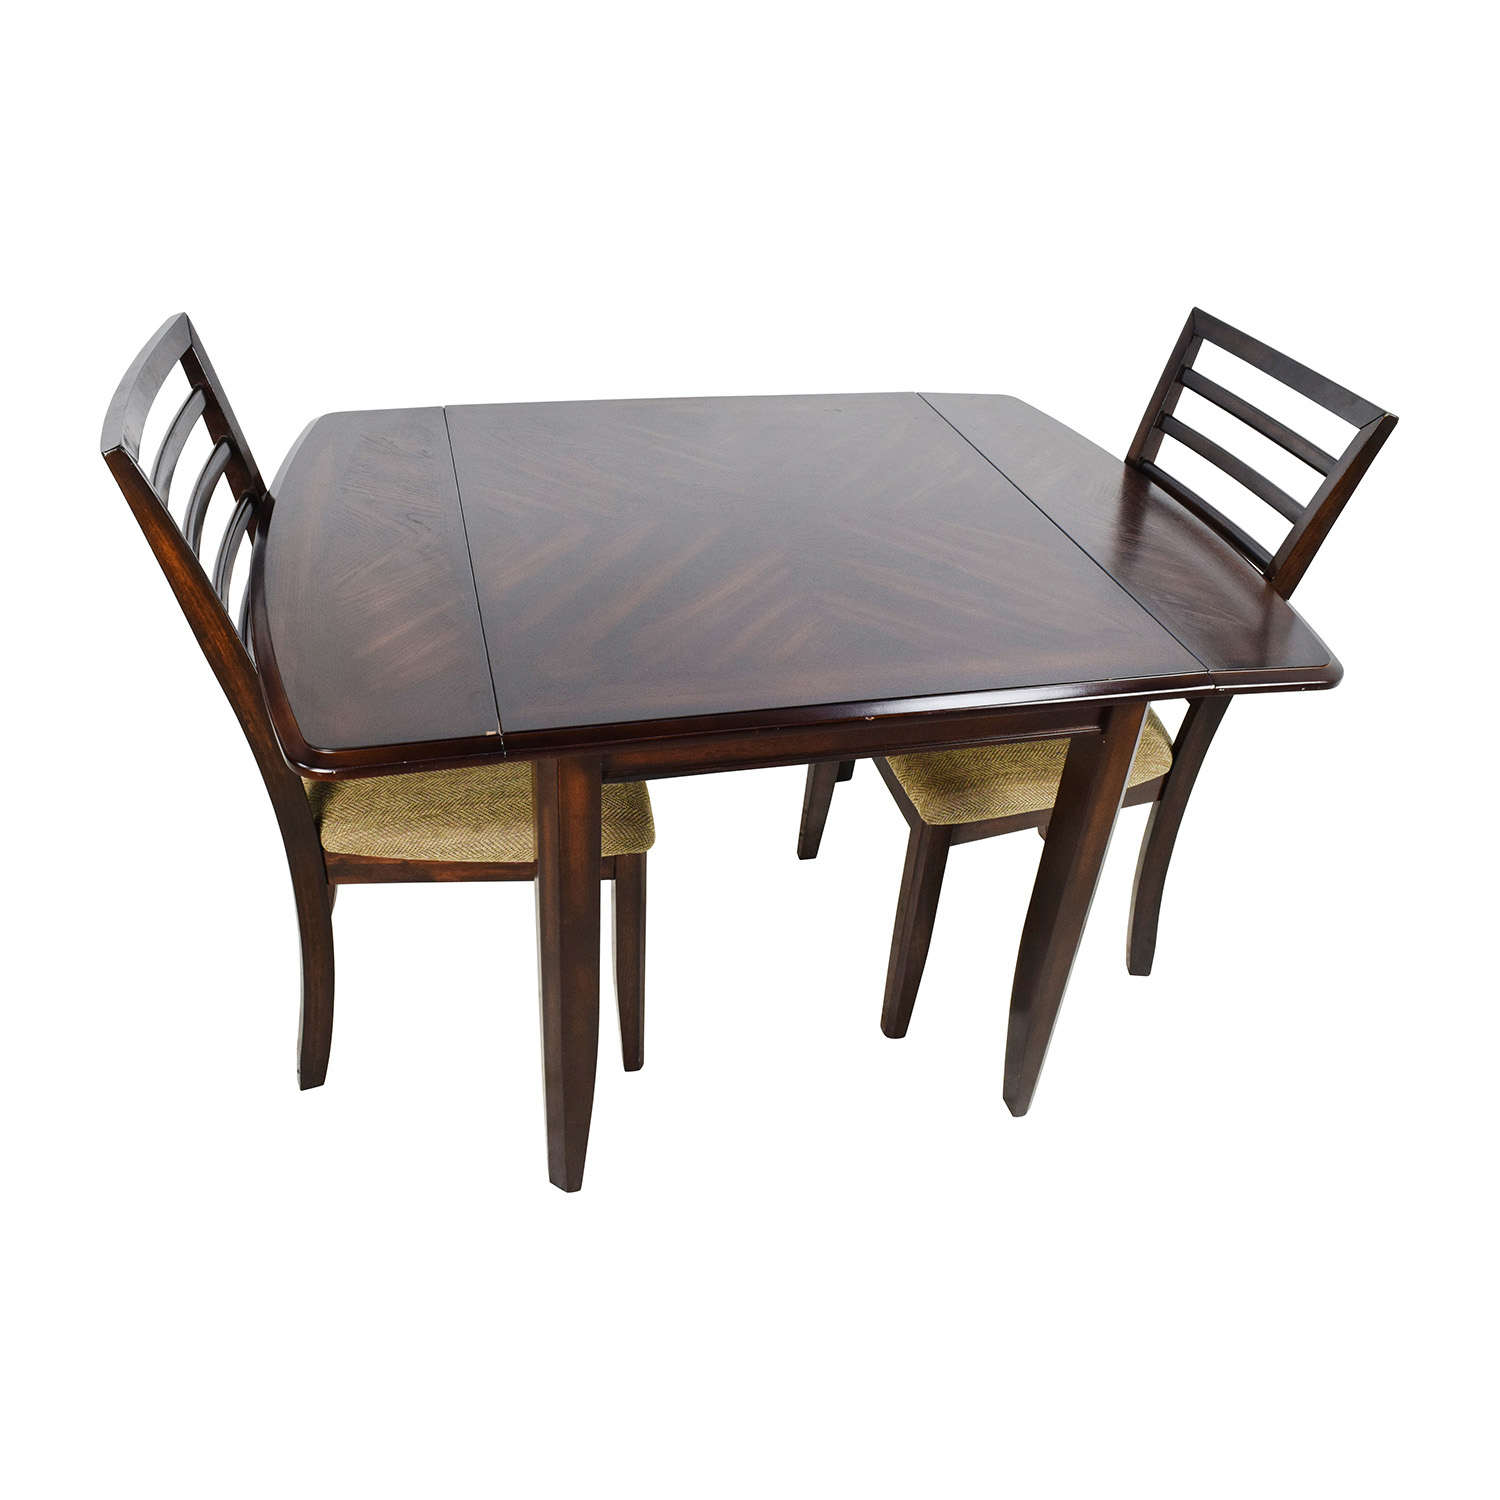 Raymour And Flanigan Dining Chairs: Raymour And Flanigan Raymour & Flanigan Chace